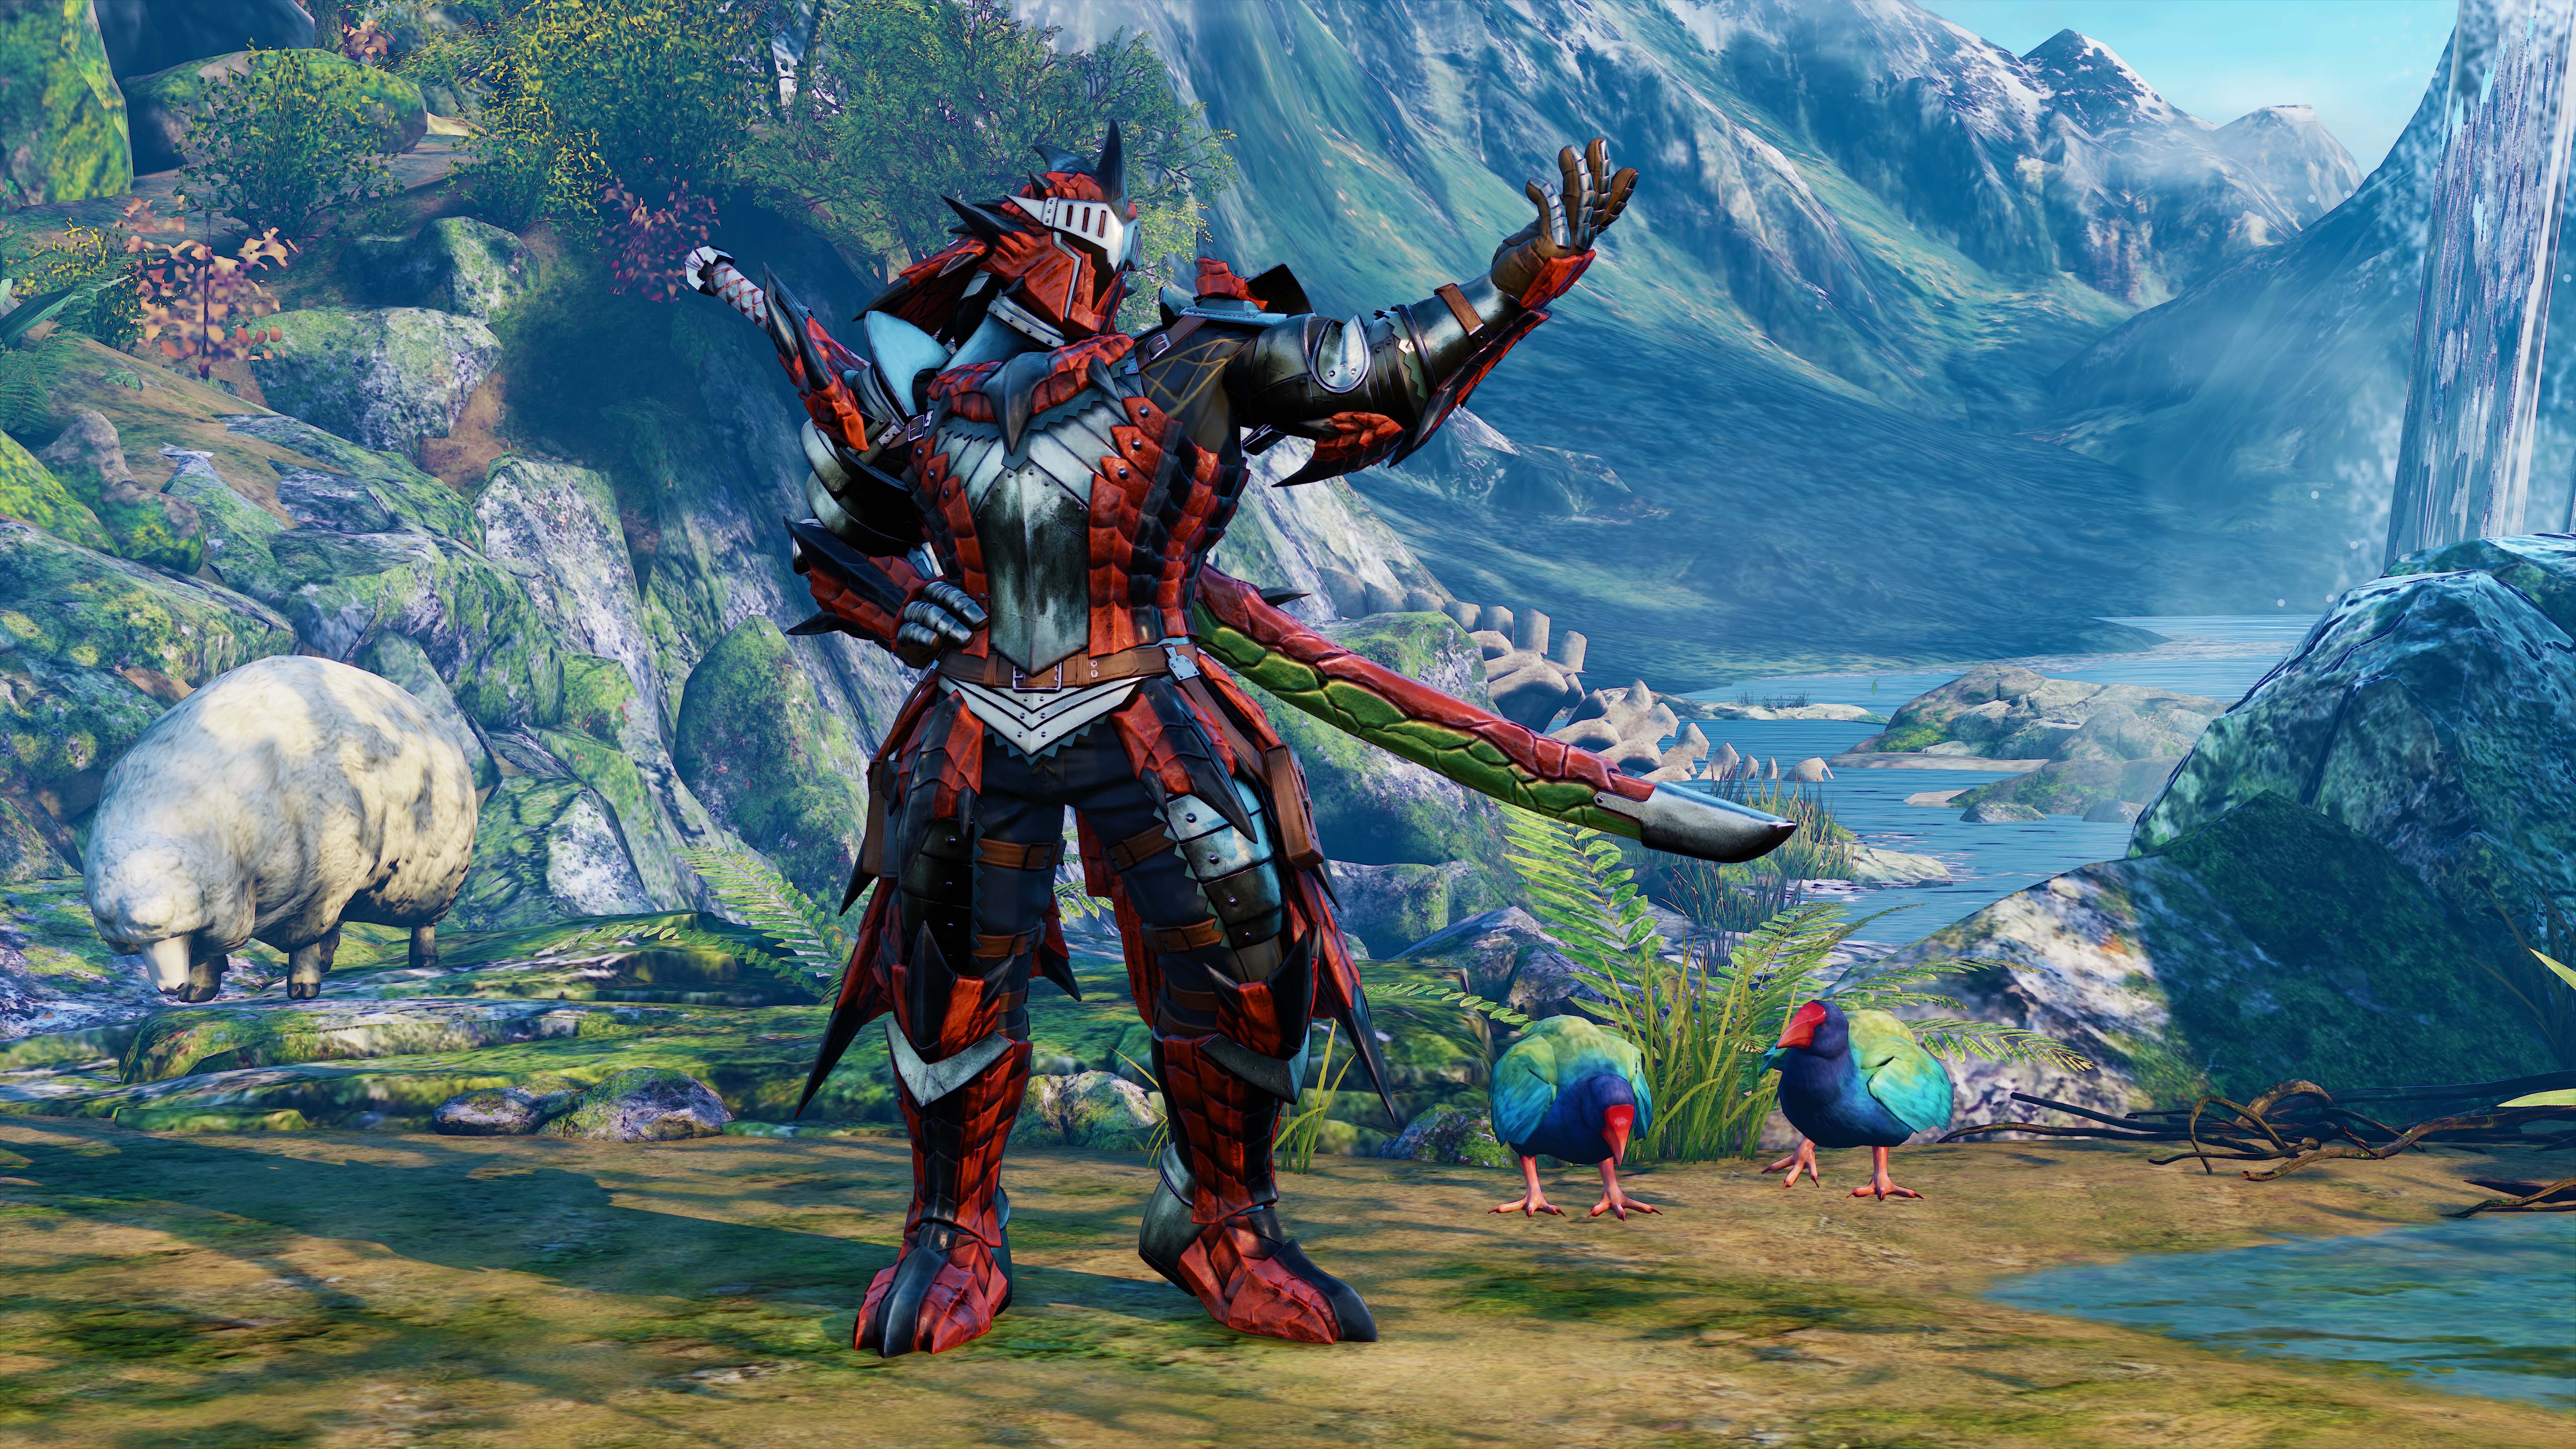 Rathalos Armor for Ken